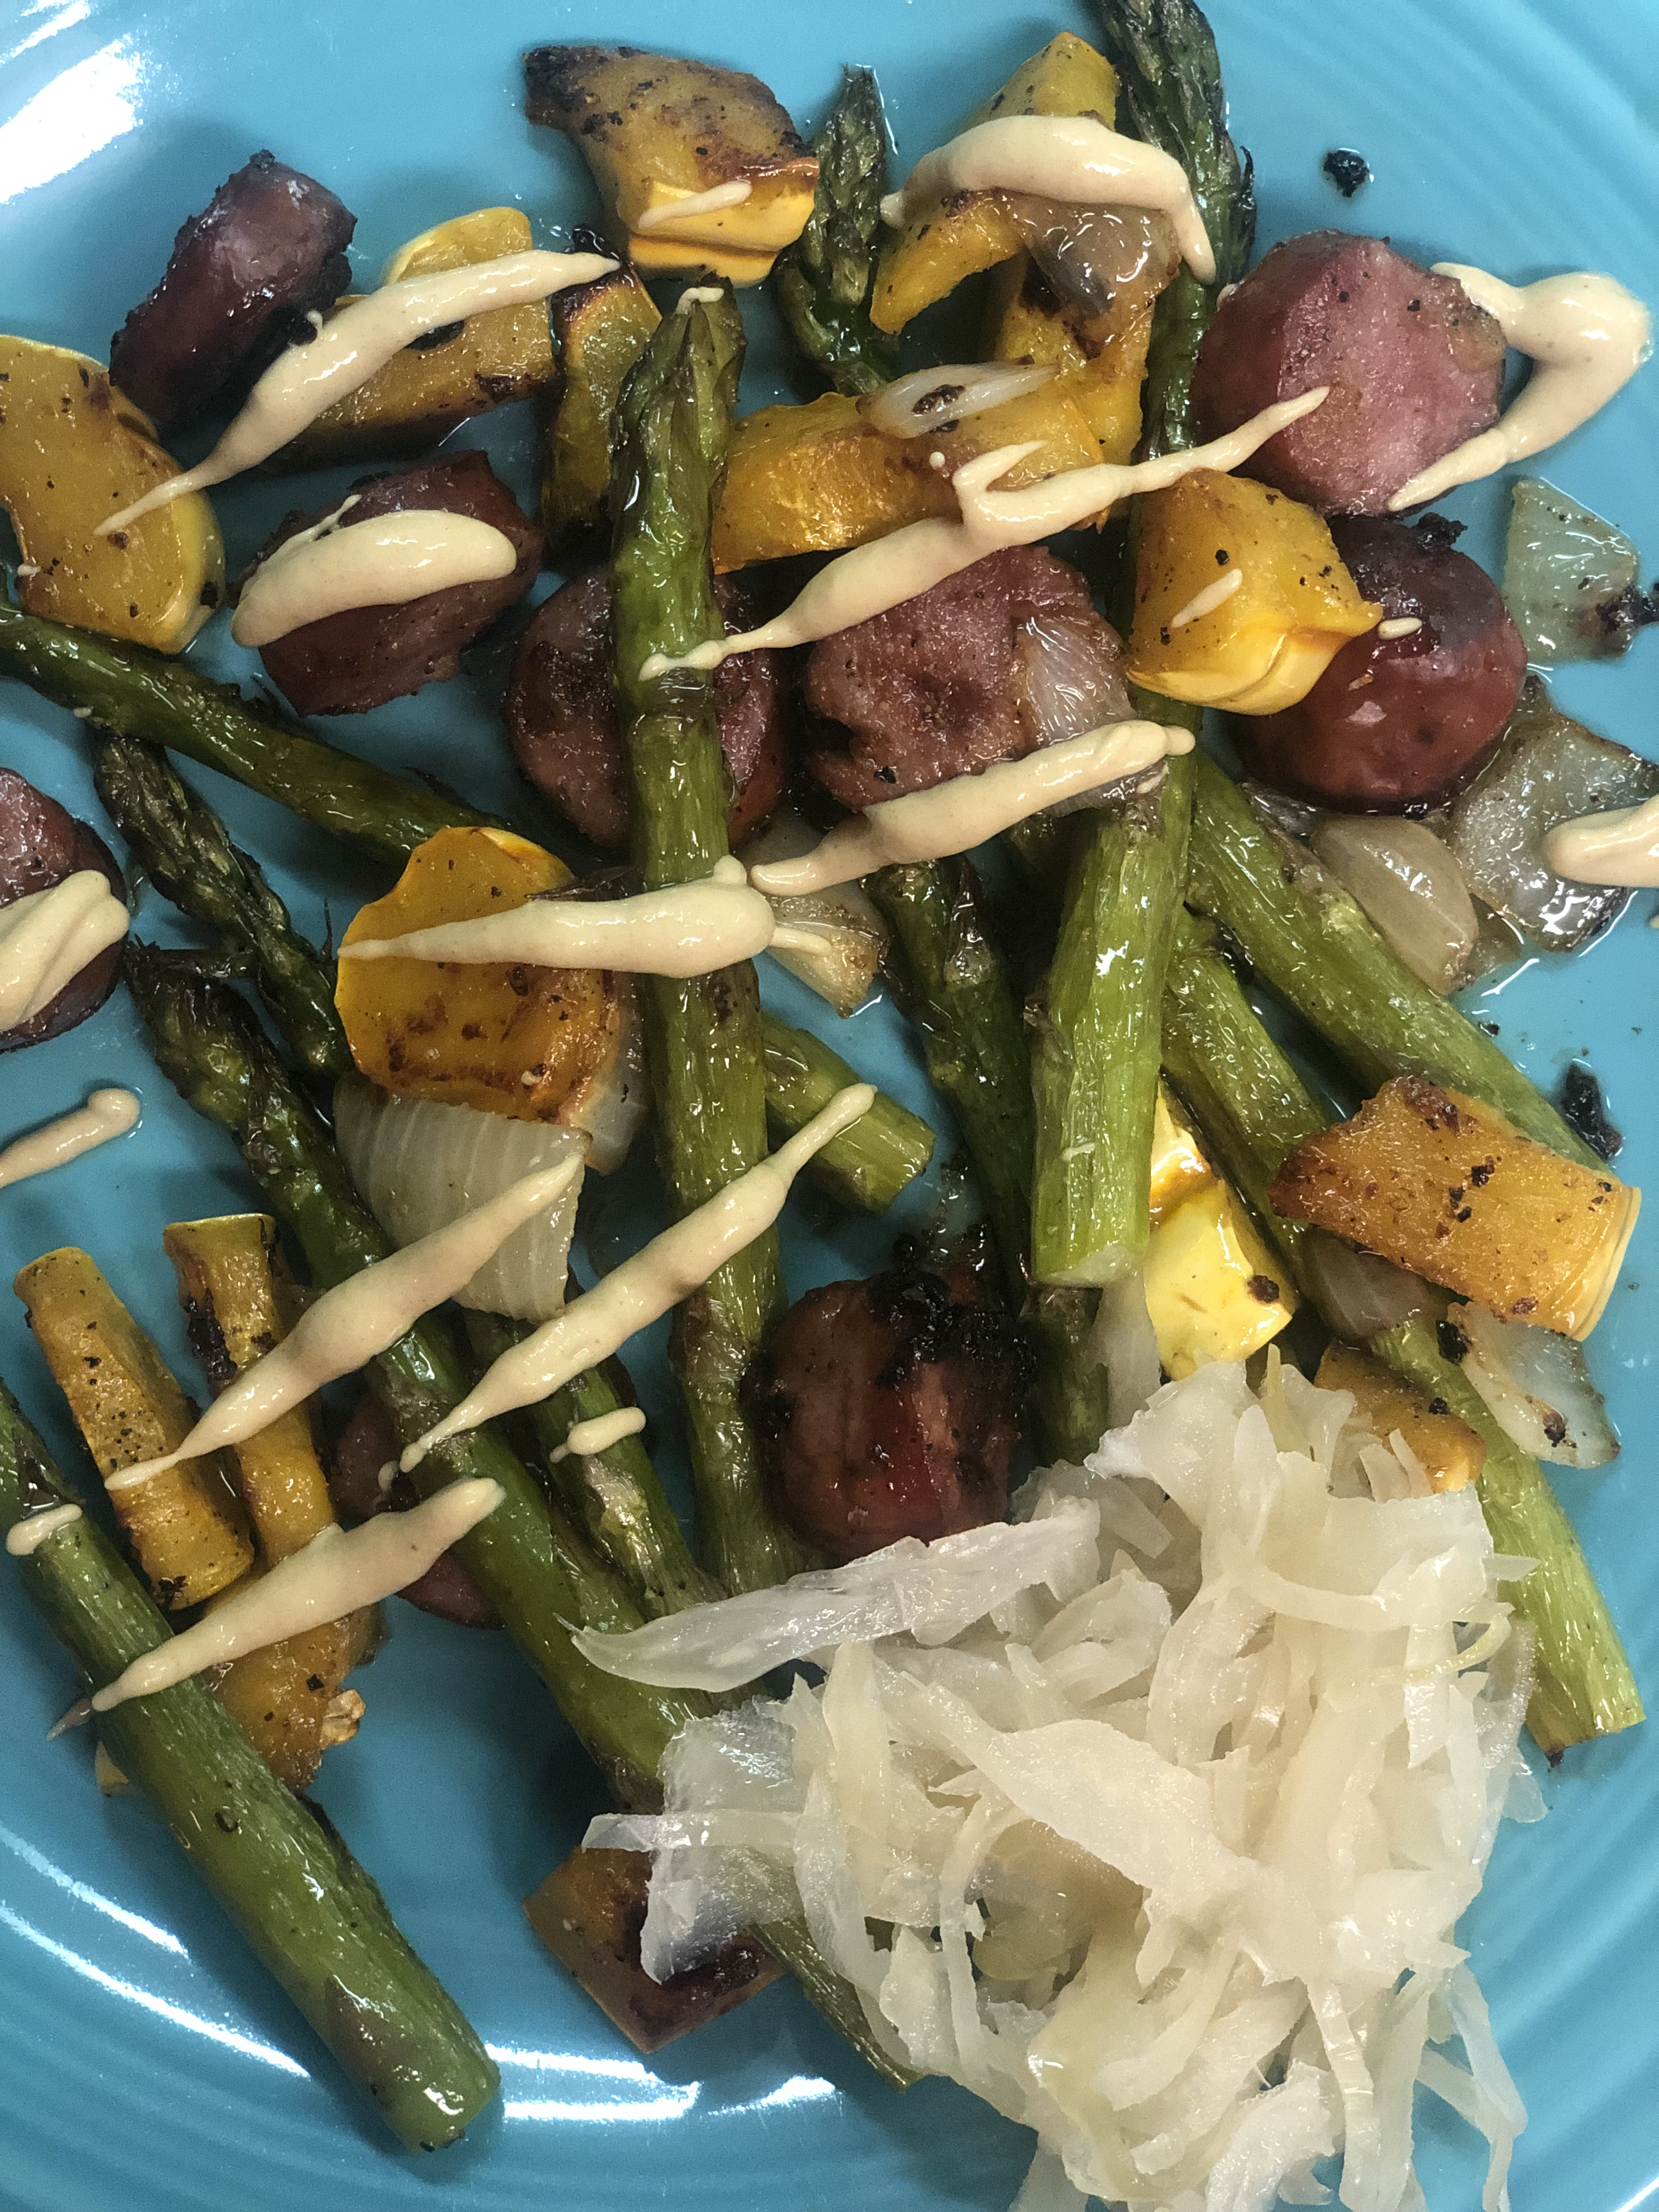 Roasted sausage, asparagus, delicata squash and onion with kraut and Dijon mustard on a blue plate